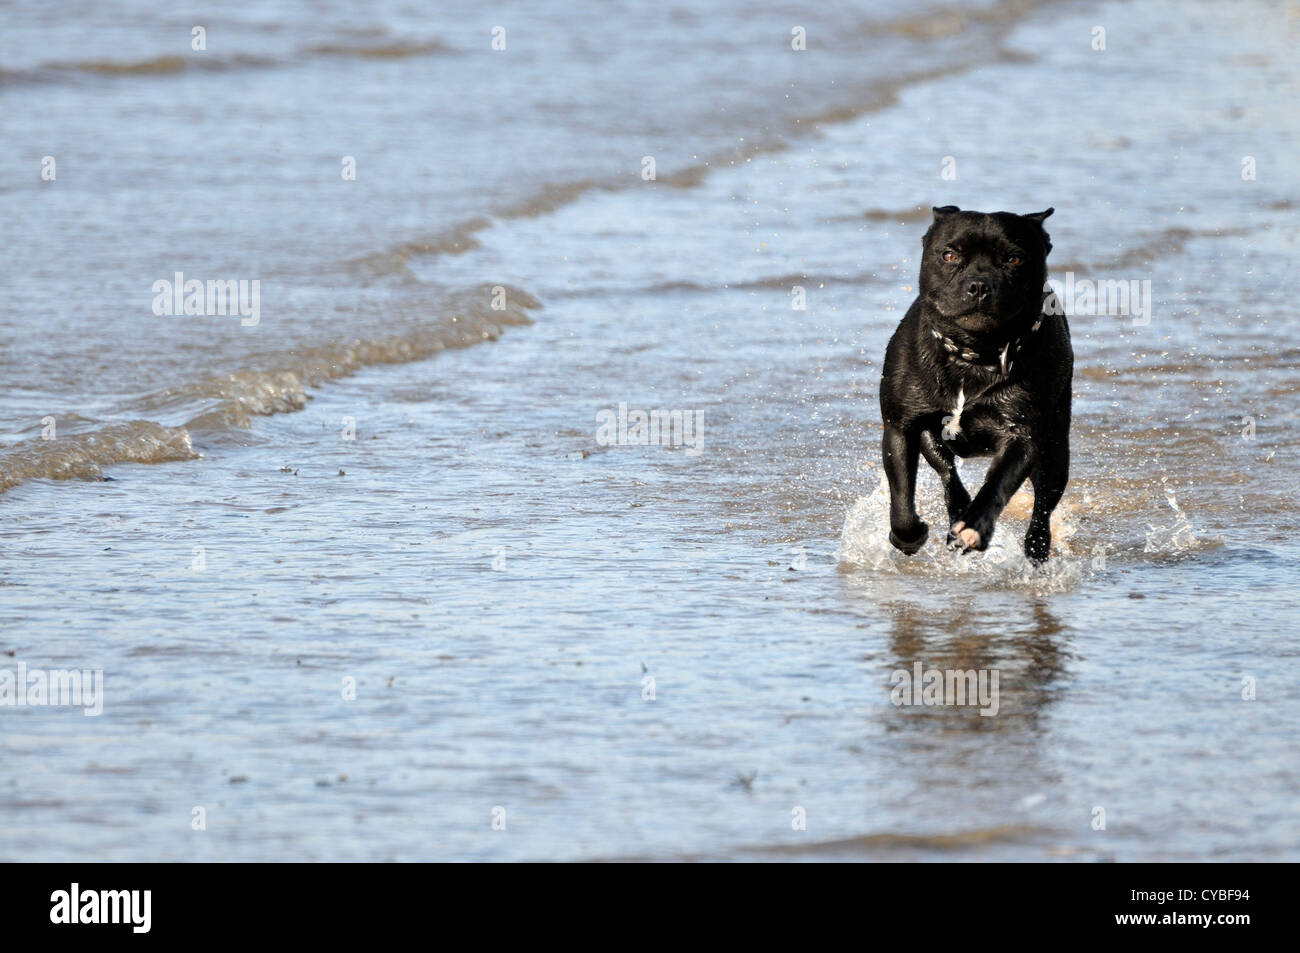 Black Staffordshire Bull Terrier running at camera in soaked condition - Stock Image